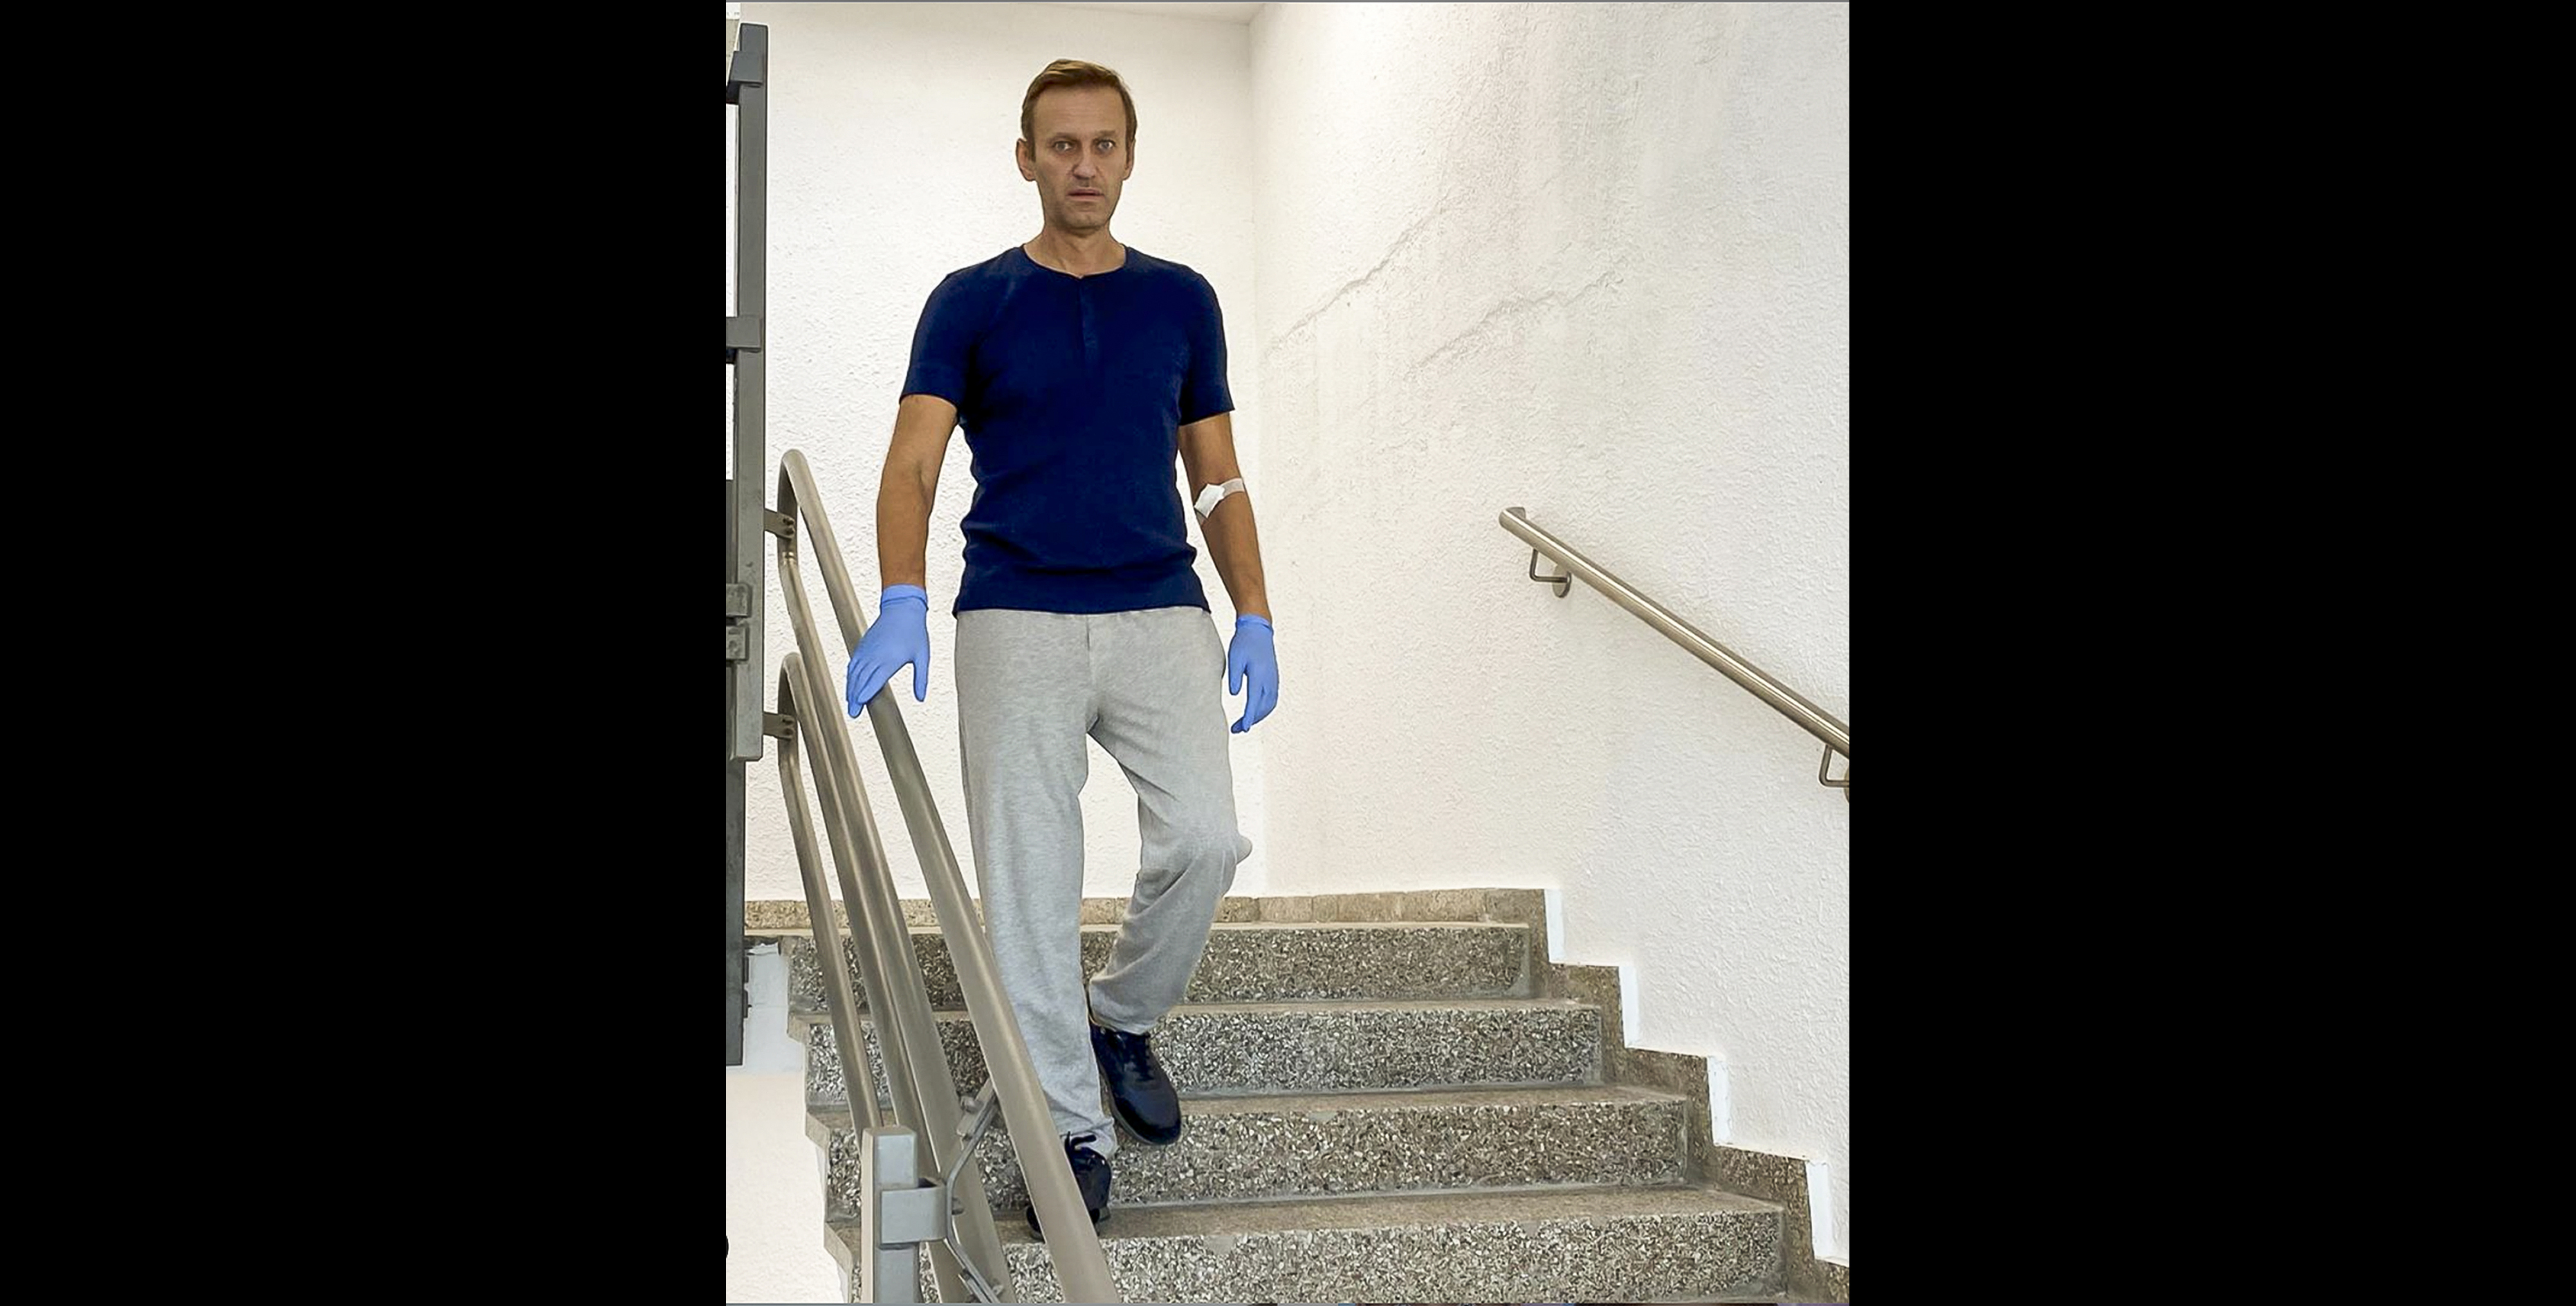 Russian opposition leader Alexei Navalny walks down stairs in a hospital in Berlin, Germany